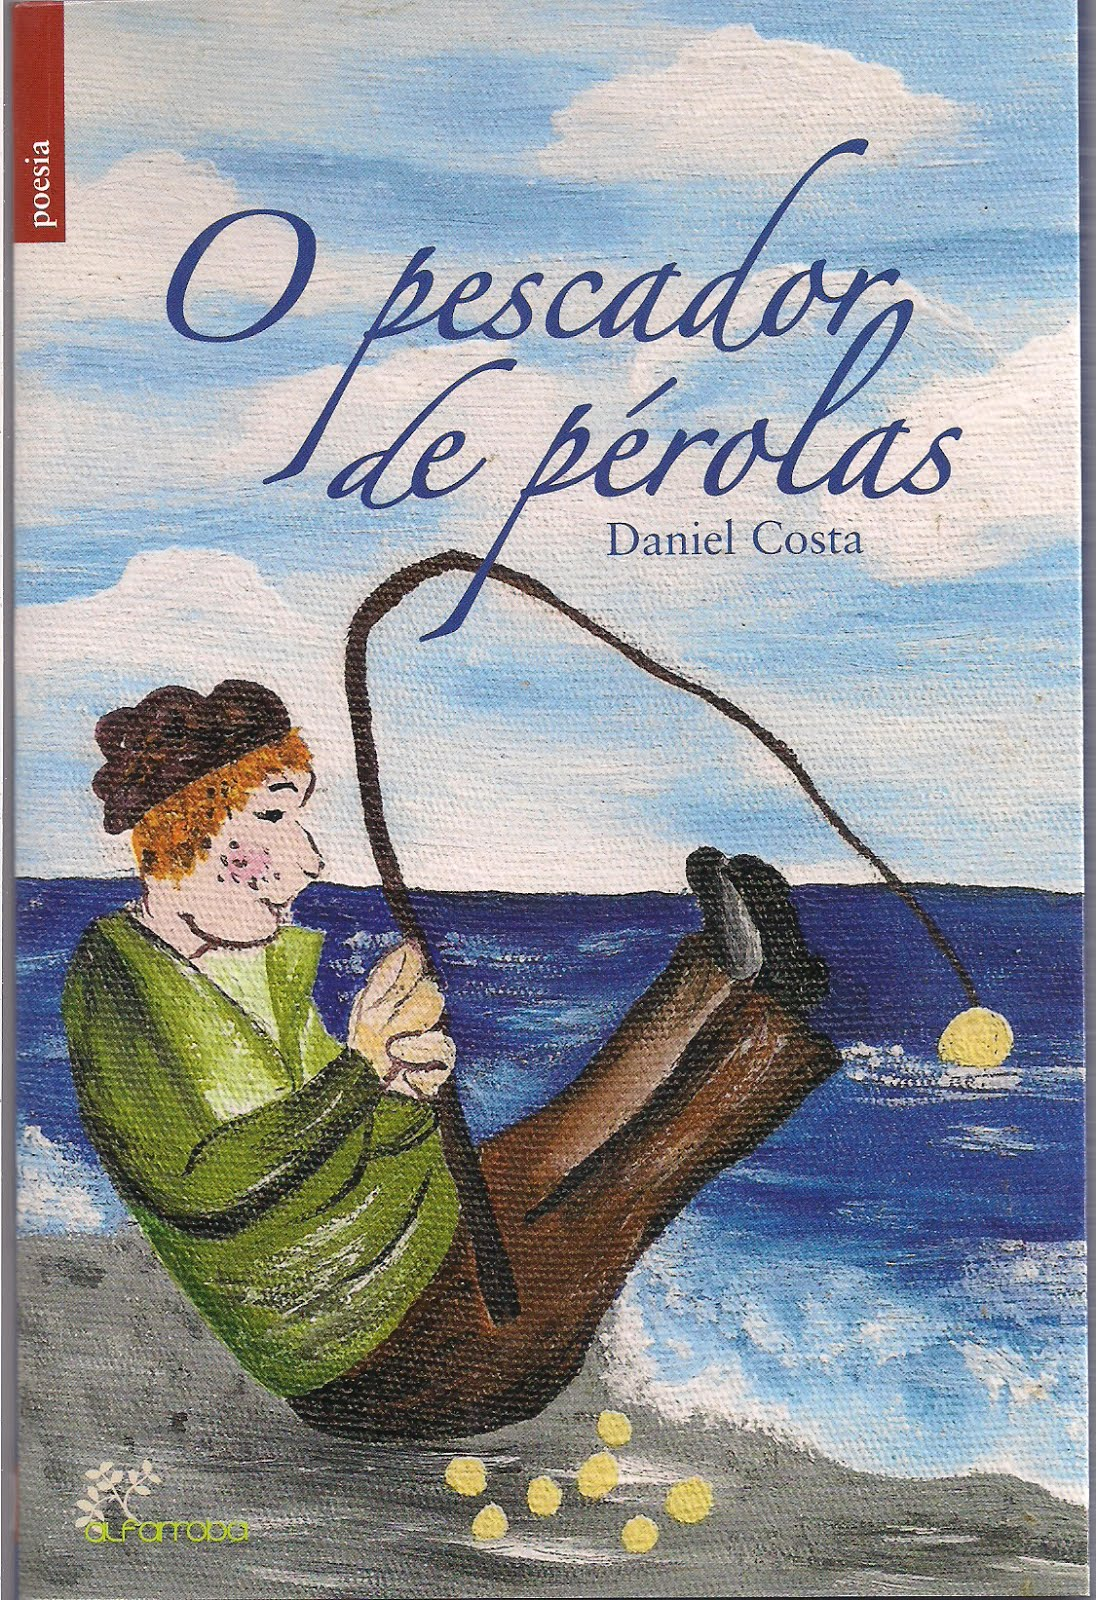 O MEU DÉCIMO LIVRO PESCADOR DE PÉROLAS